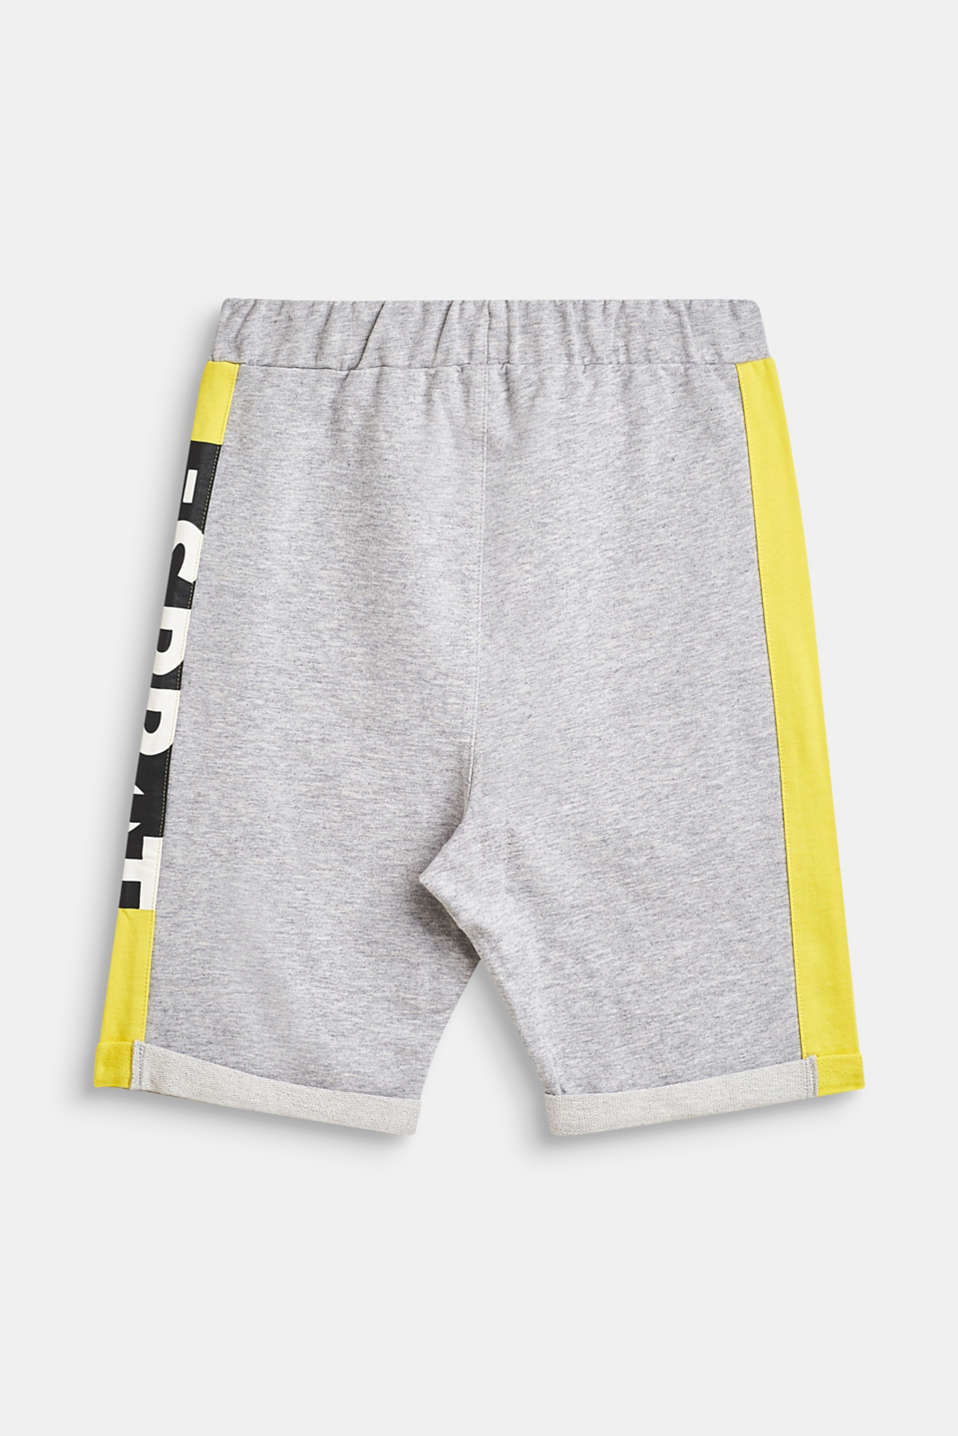 Sweatshirt shorts with a statement print, LCHEATHER SILVER, detail image number 1